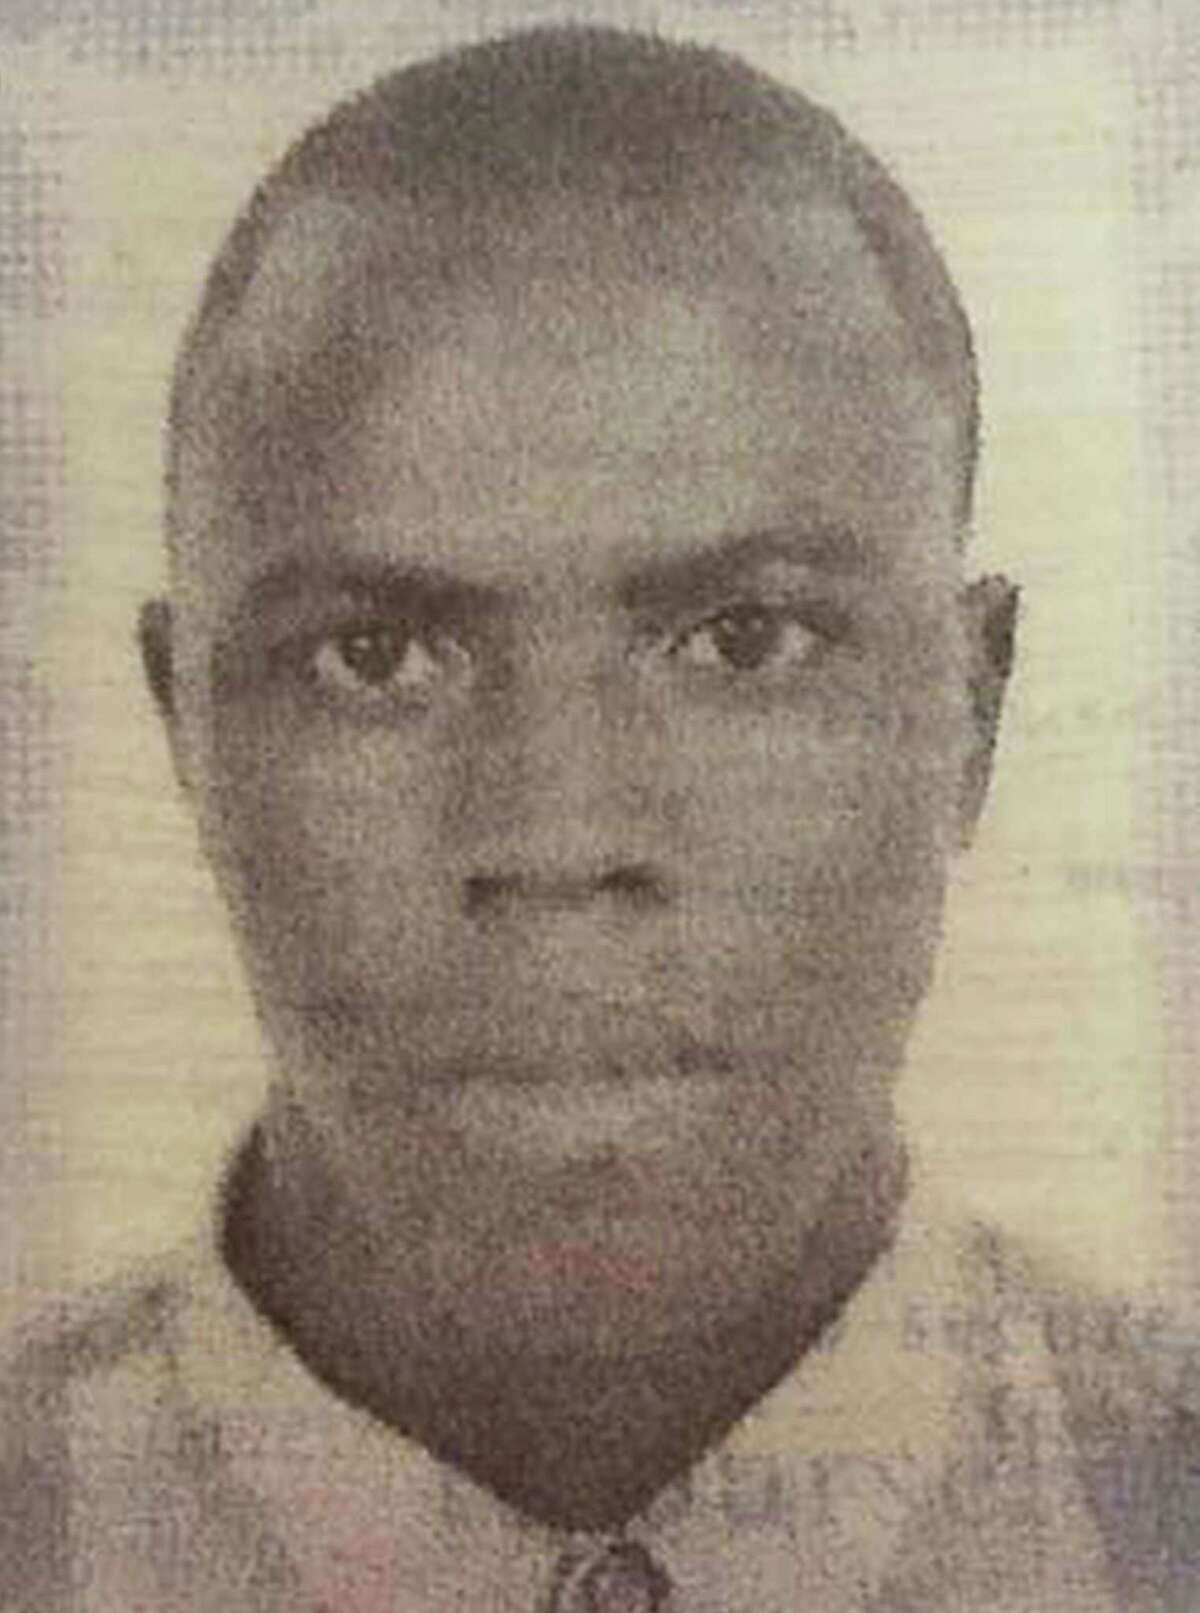 This undated passport photo released by the Inglewood Police Department shows missing Special Olympics athlete Abidjan Ouattara, originally from the Ivory Coast. Ouattara vanished near Los Angeles on Monday.